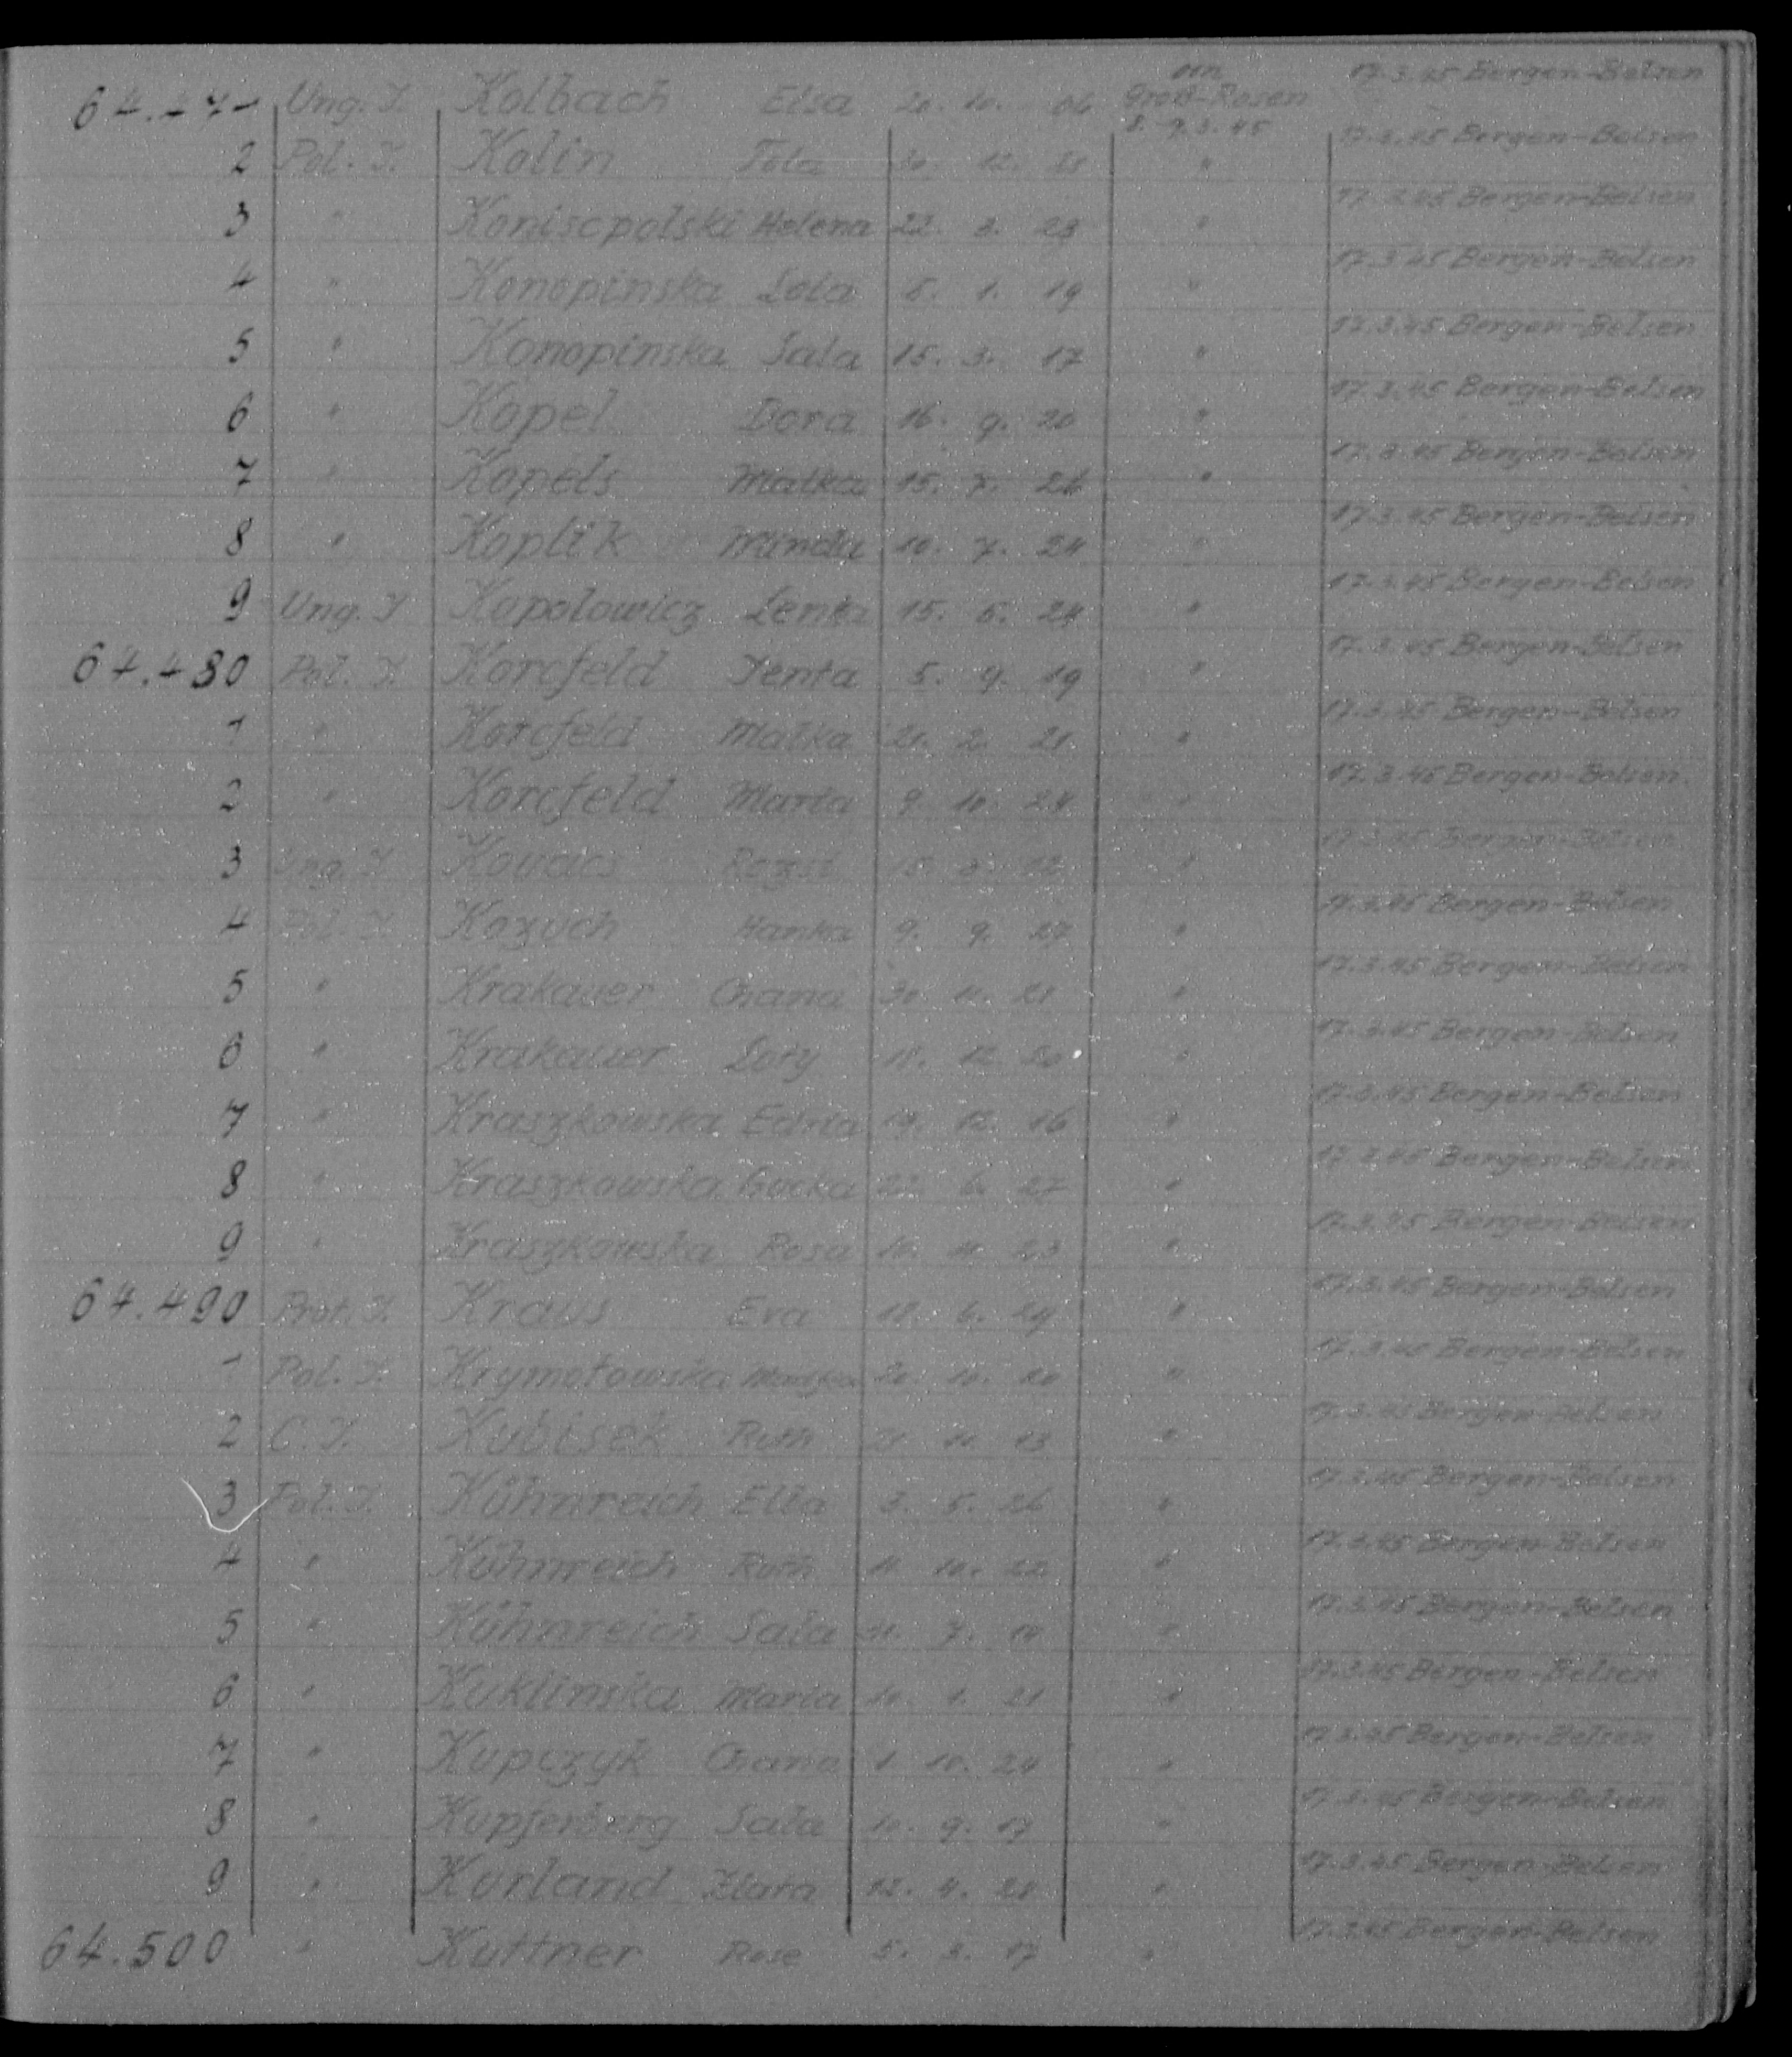 Lists of Inmates - Women (Book No. 8, page 155)